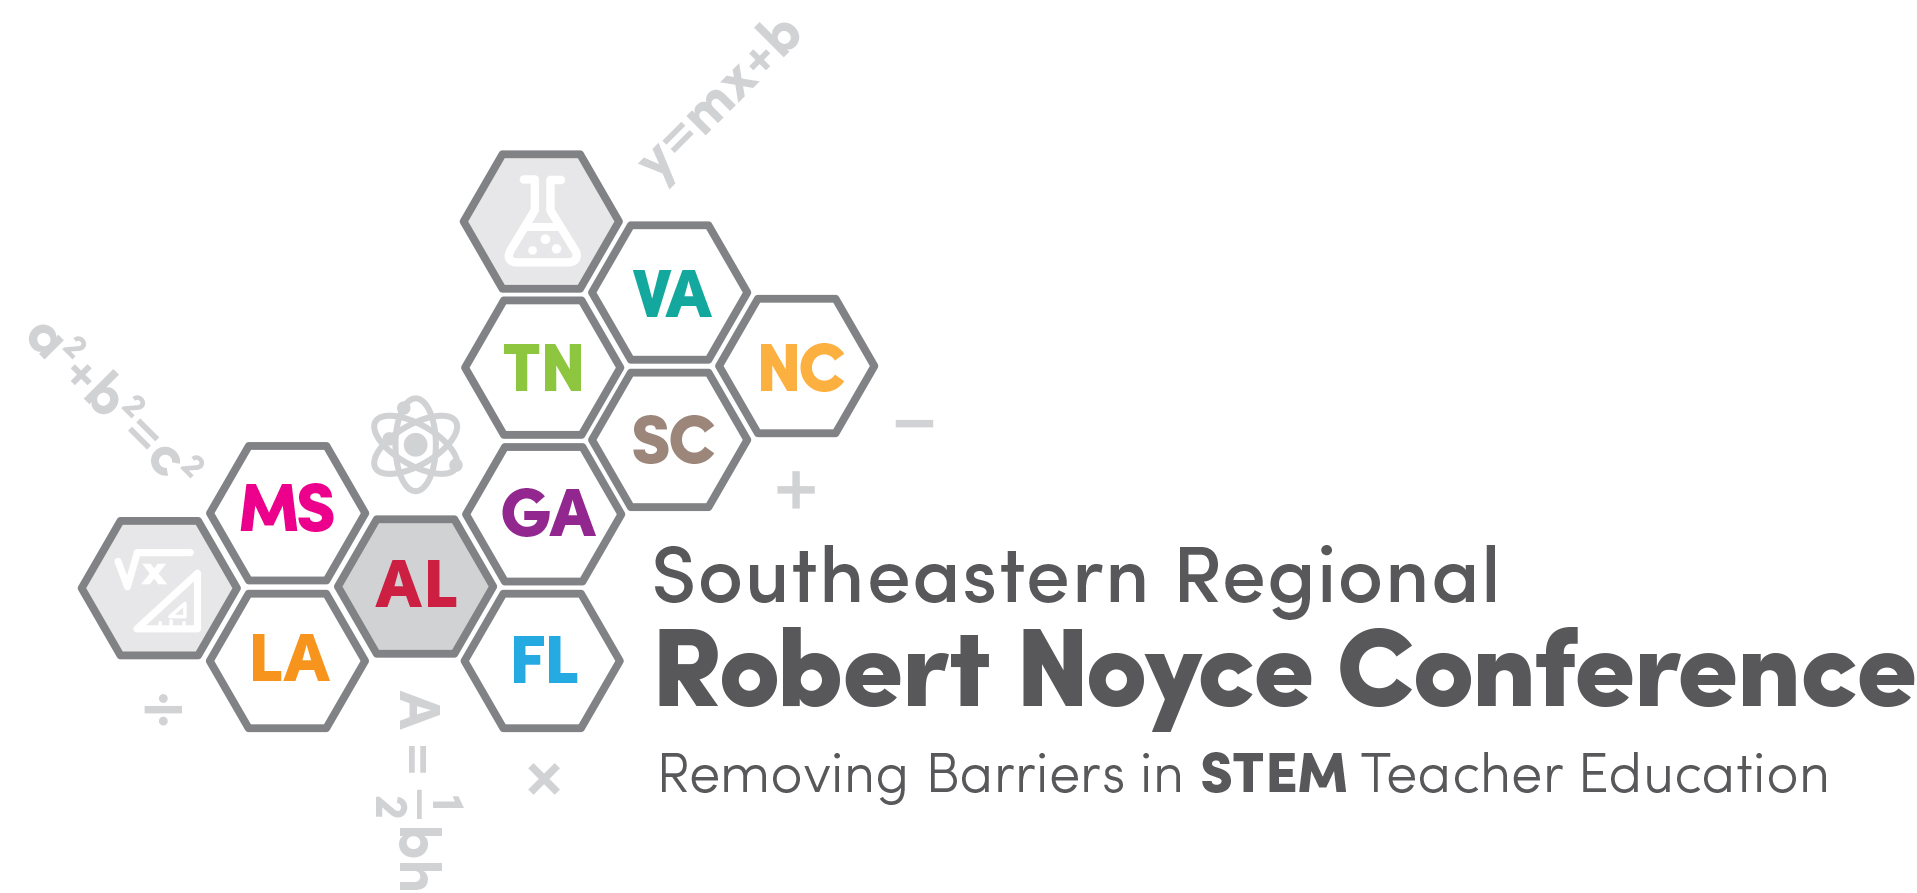 Southeastern Regional Robert Noyce Conference